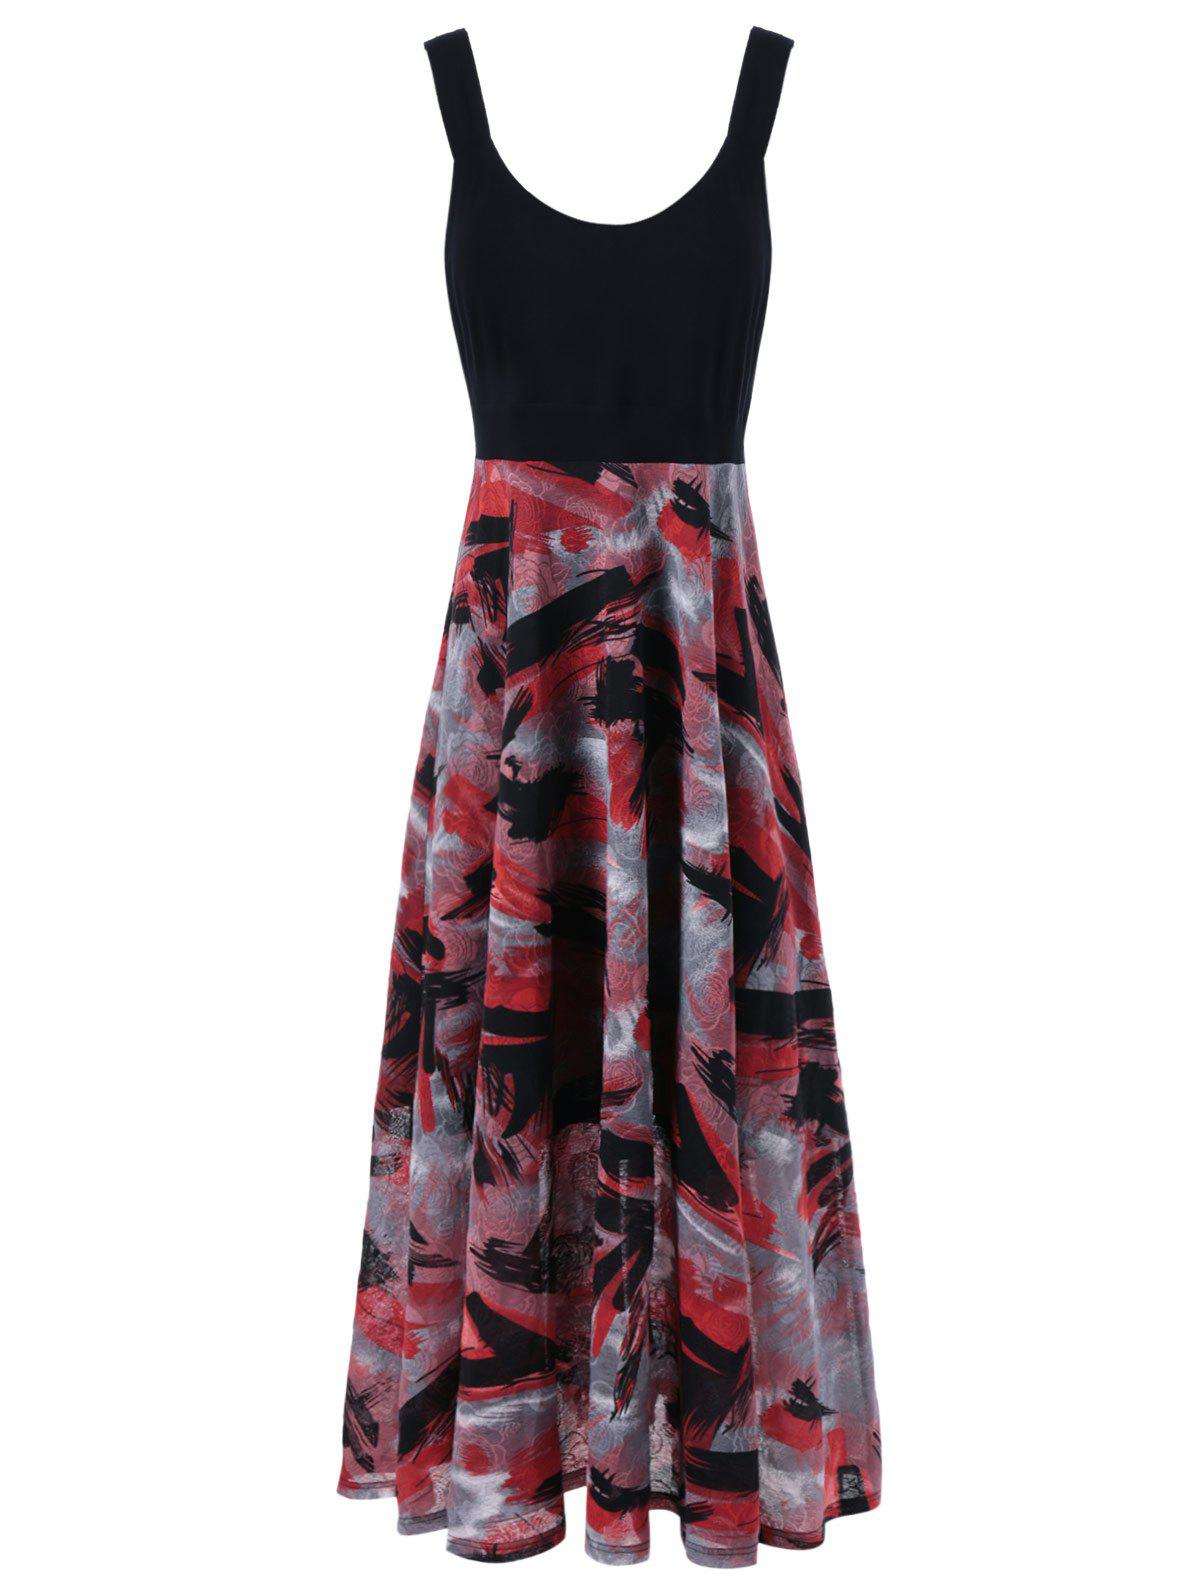 Plus Size Tie Dye Midi Casual Flower Dress - RED/BLACK 5XL